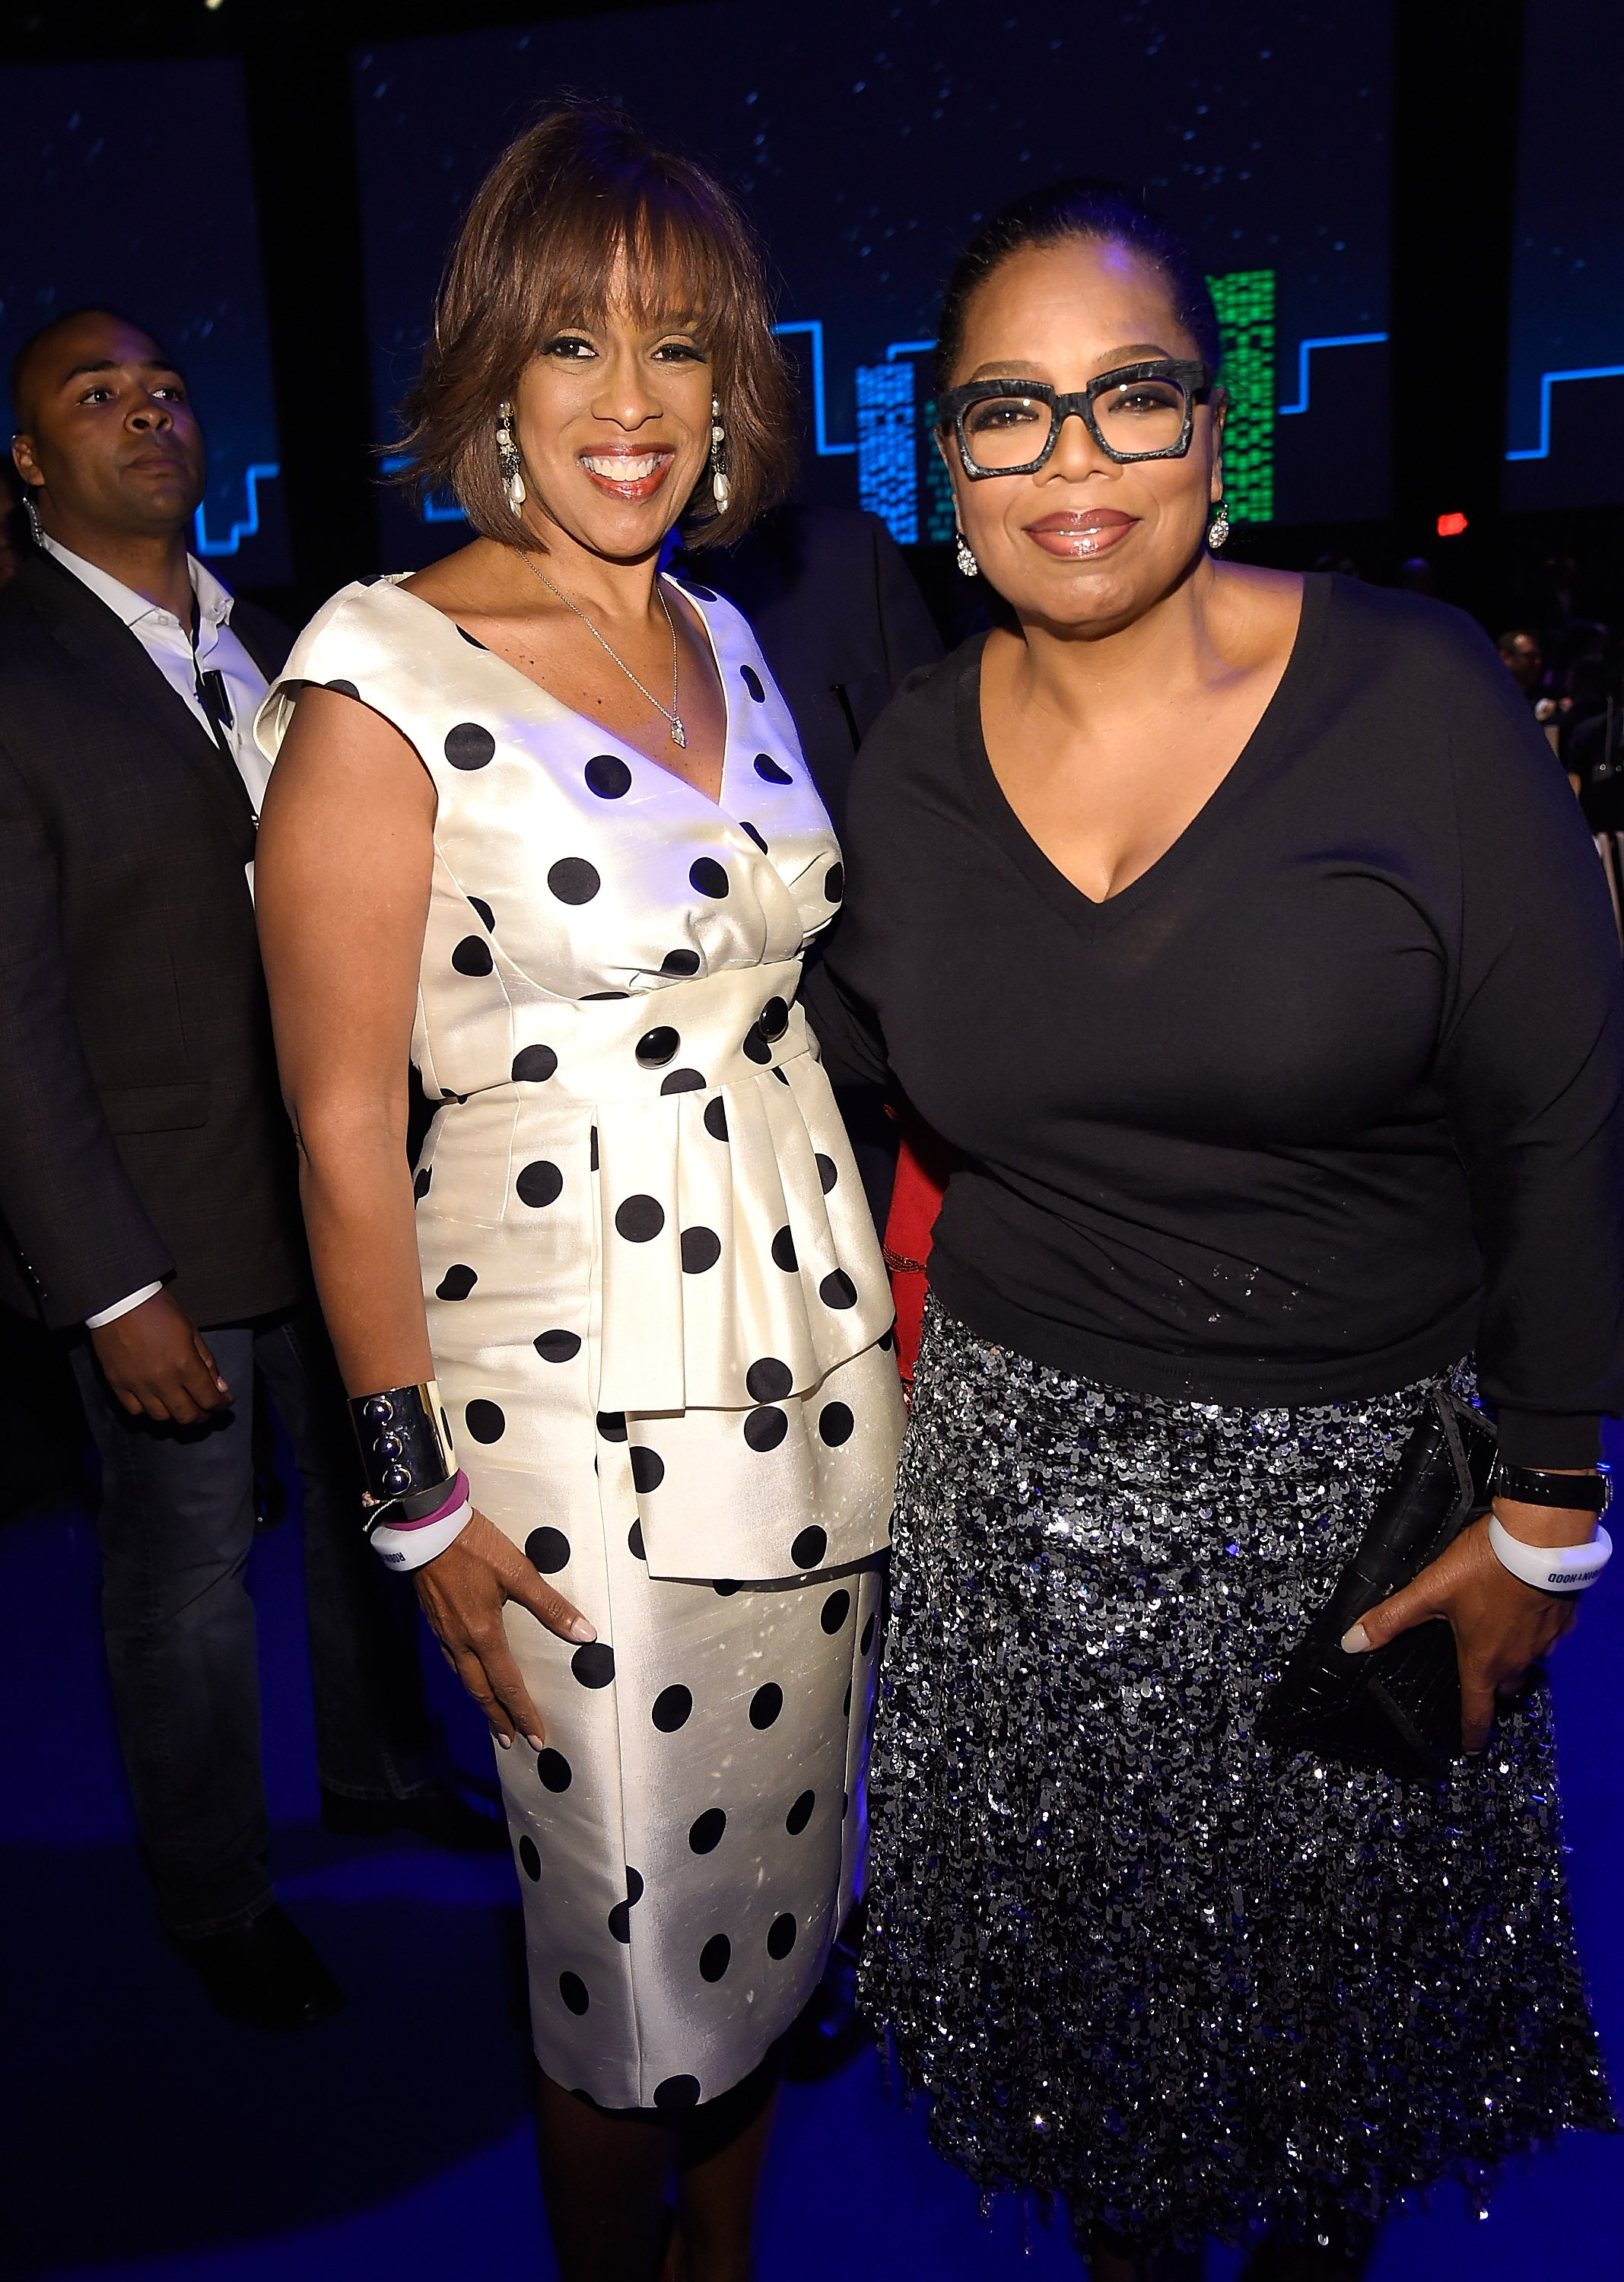 Best friends Gayle King and Oprah Winfrey at The Robin Hood Foundation's 2016 Benefit in May 2016. | Photo: Getty Images